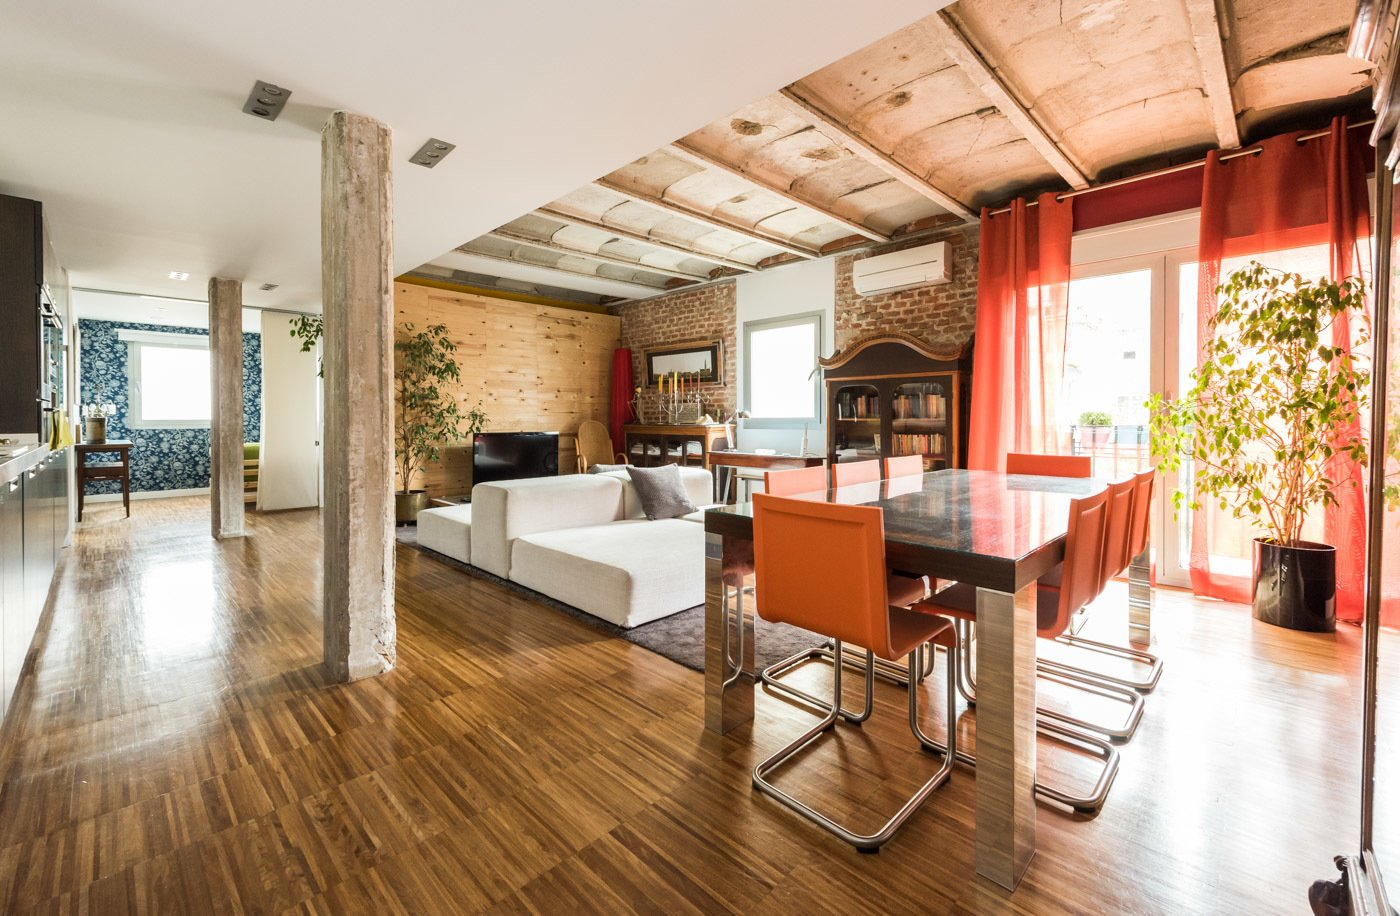 Living Room, Medium Hardwood Floor, Bench, Ceiling Lighting, Console Tables, Sofa, Chair, and Bookcase  The floor was made in iroko industrial parquet, with water varnish.  Echávarri house 100m2. Loft between gardens.